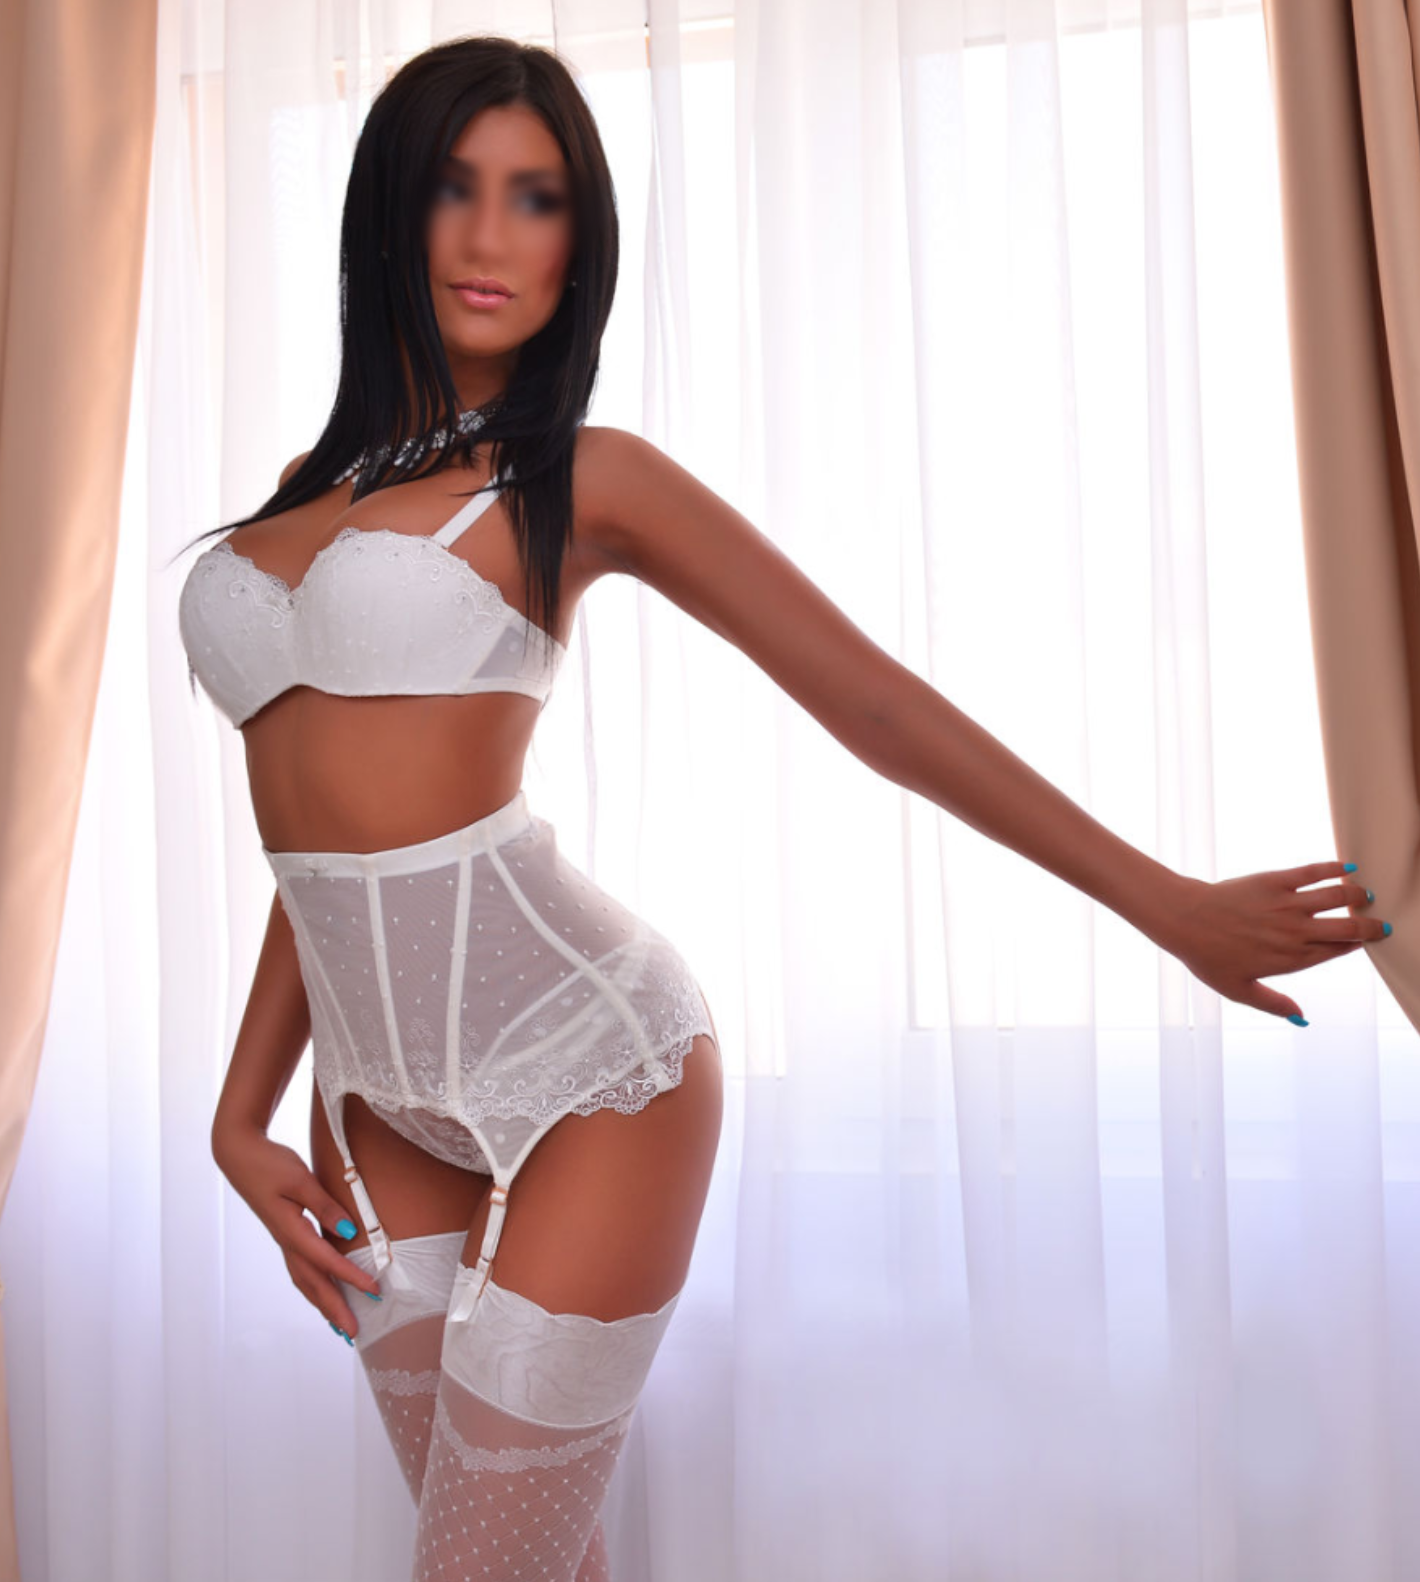 europe escort girls erotic massage in europe